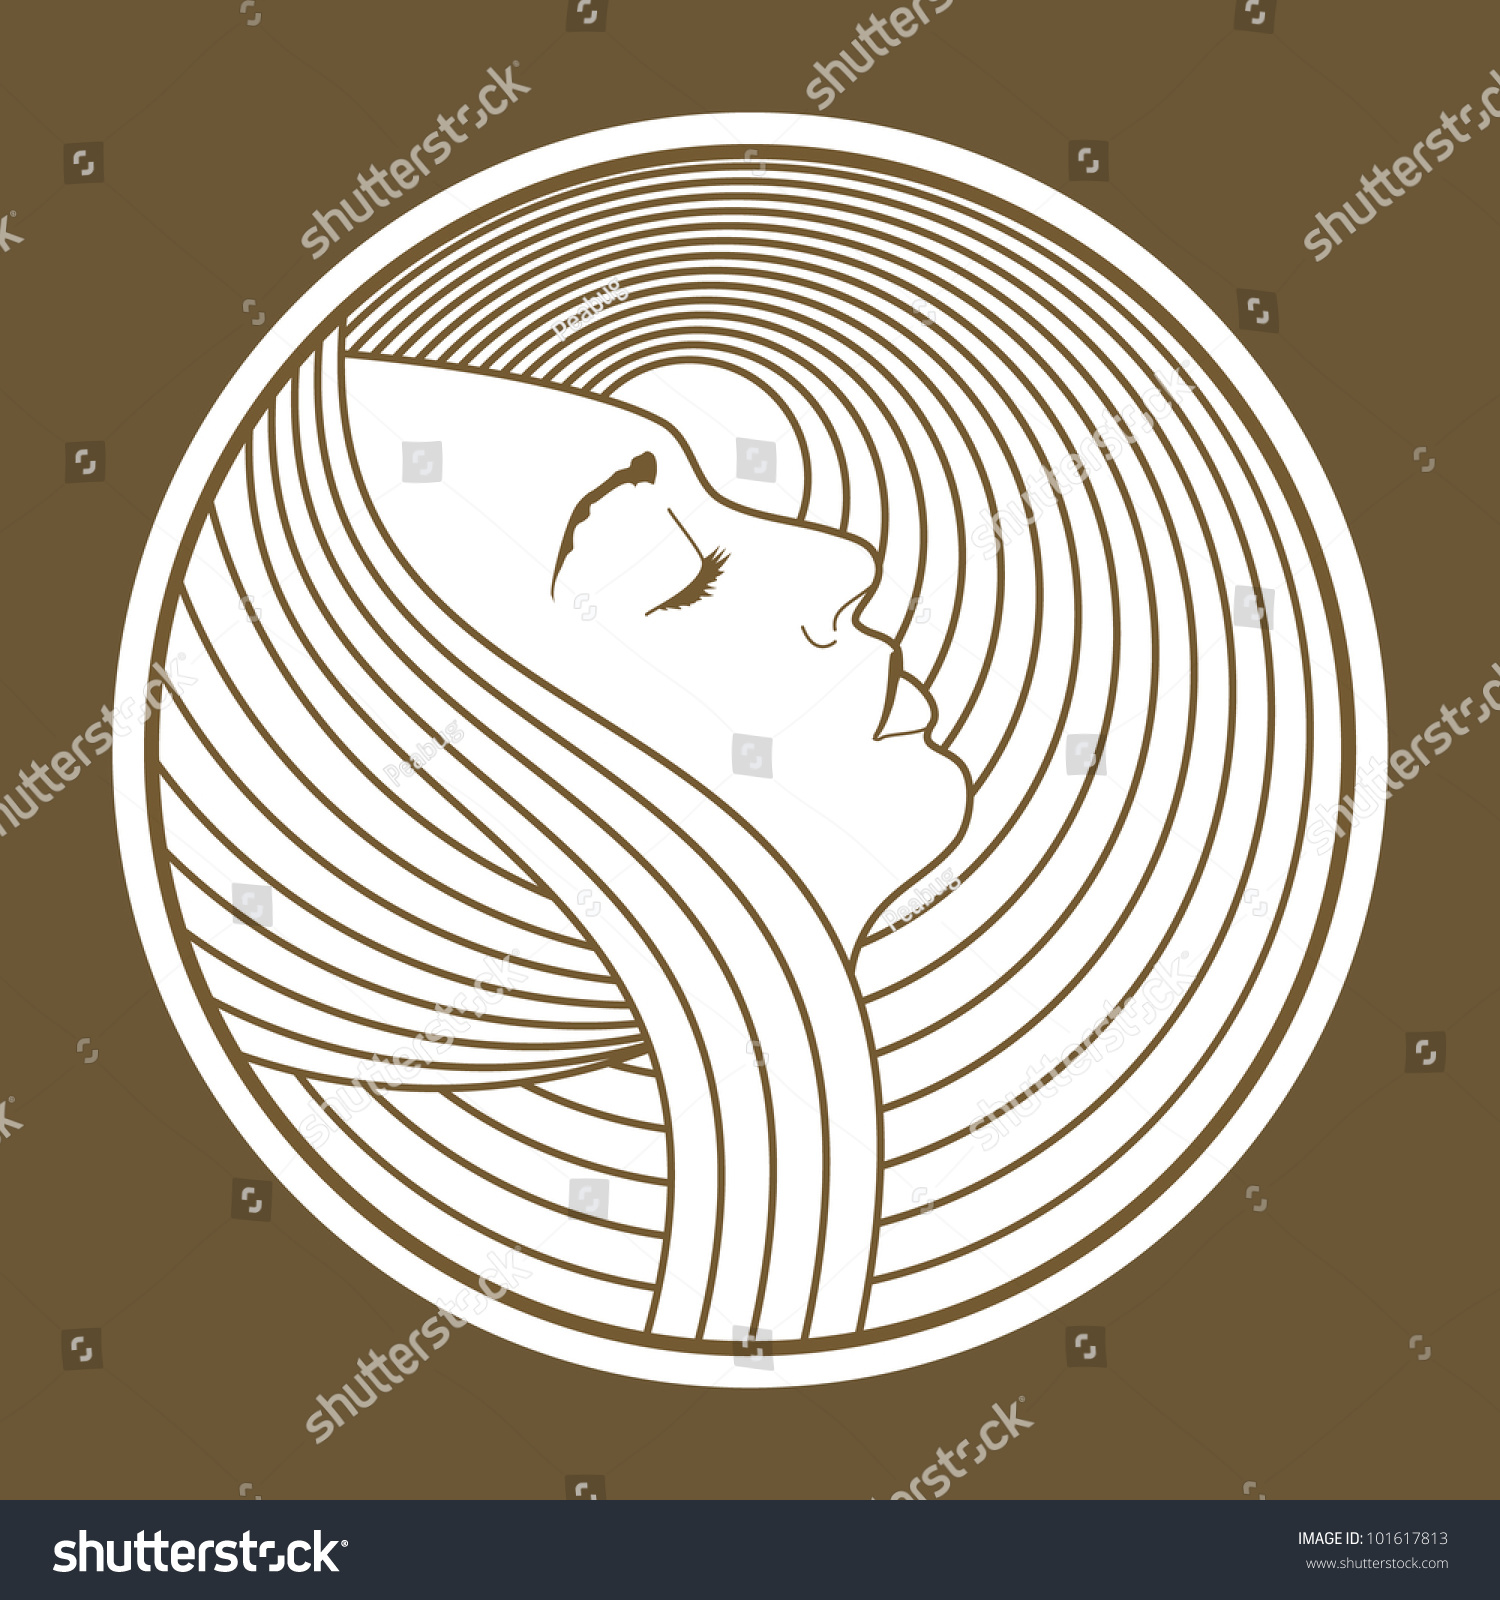 Art nouveau lady simple icon beautiful stock vector for Art nouveau shapes